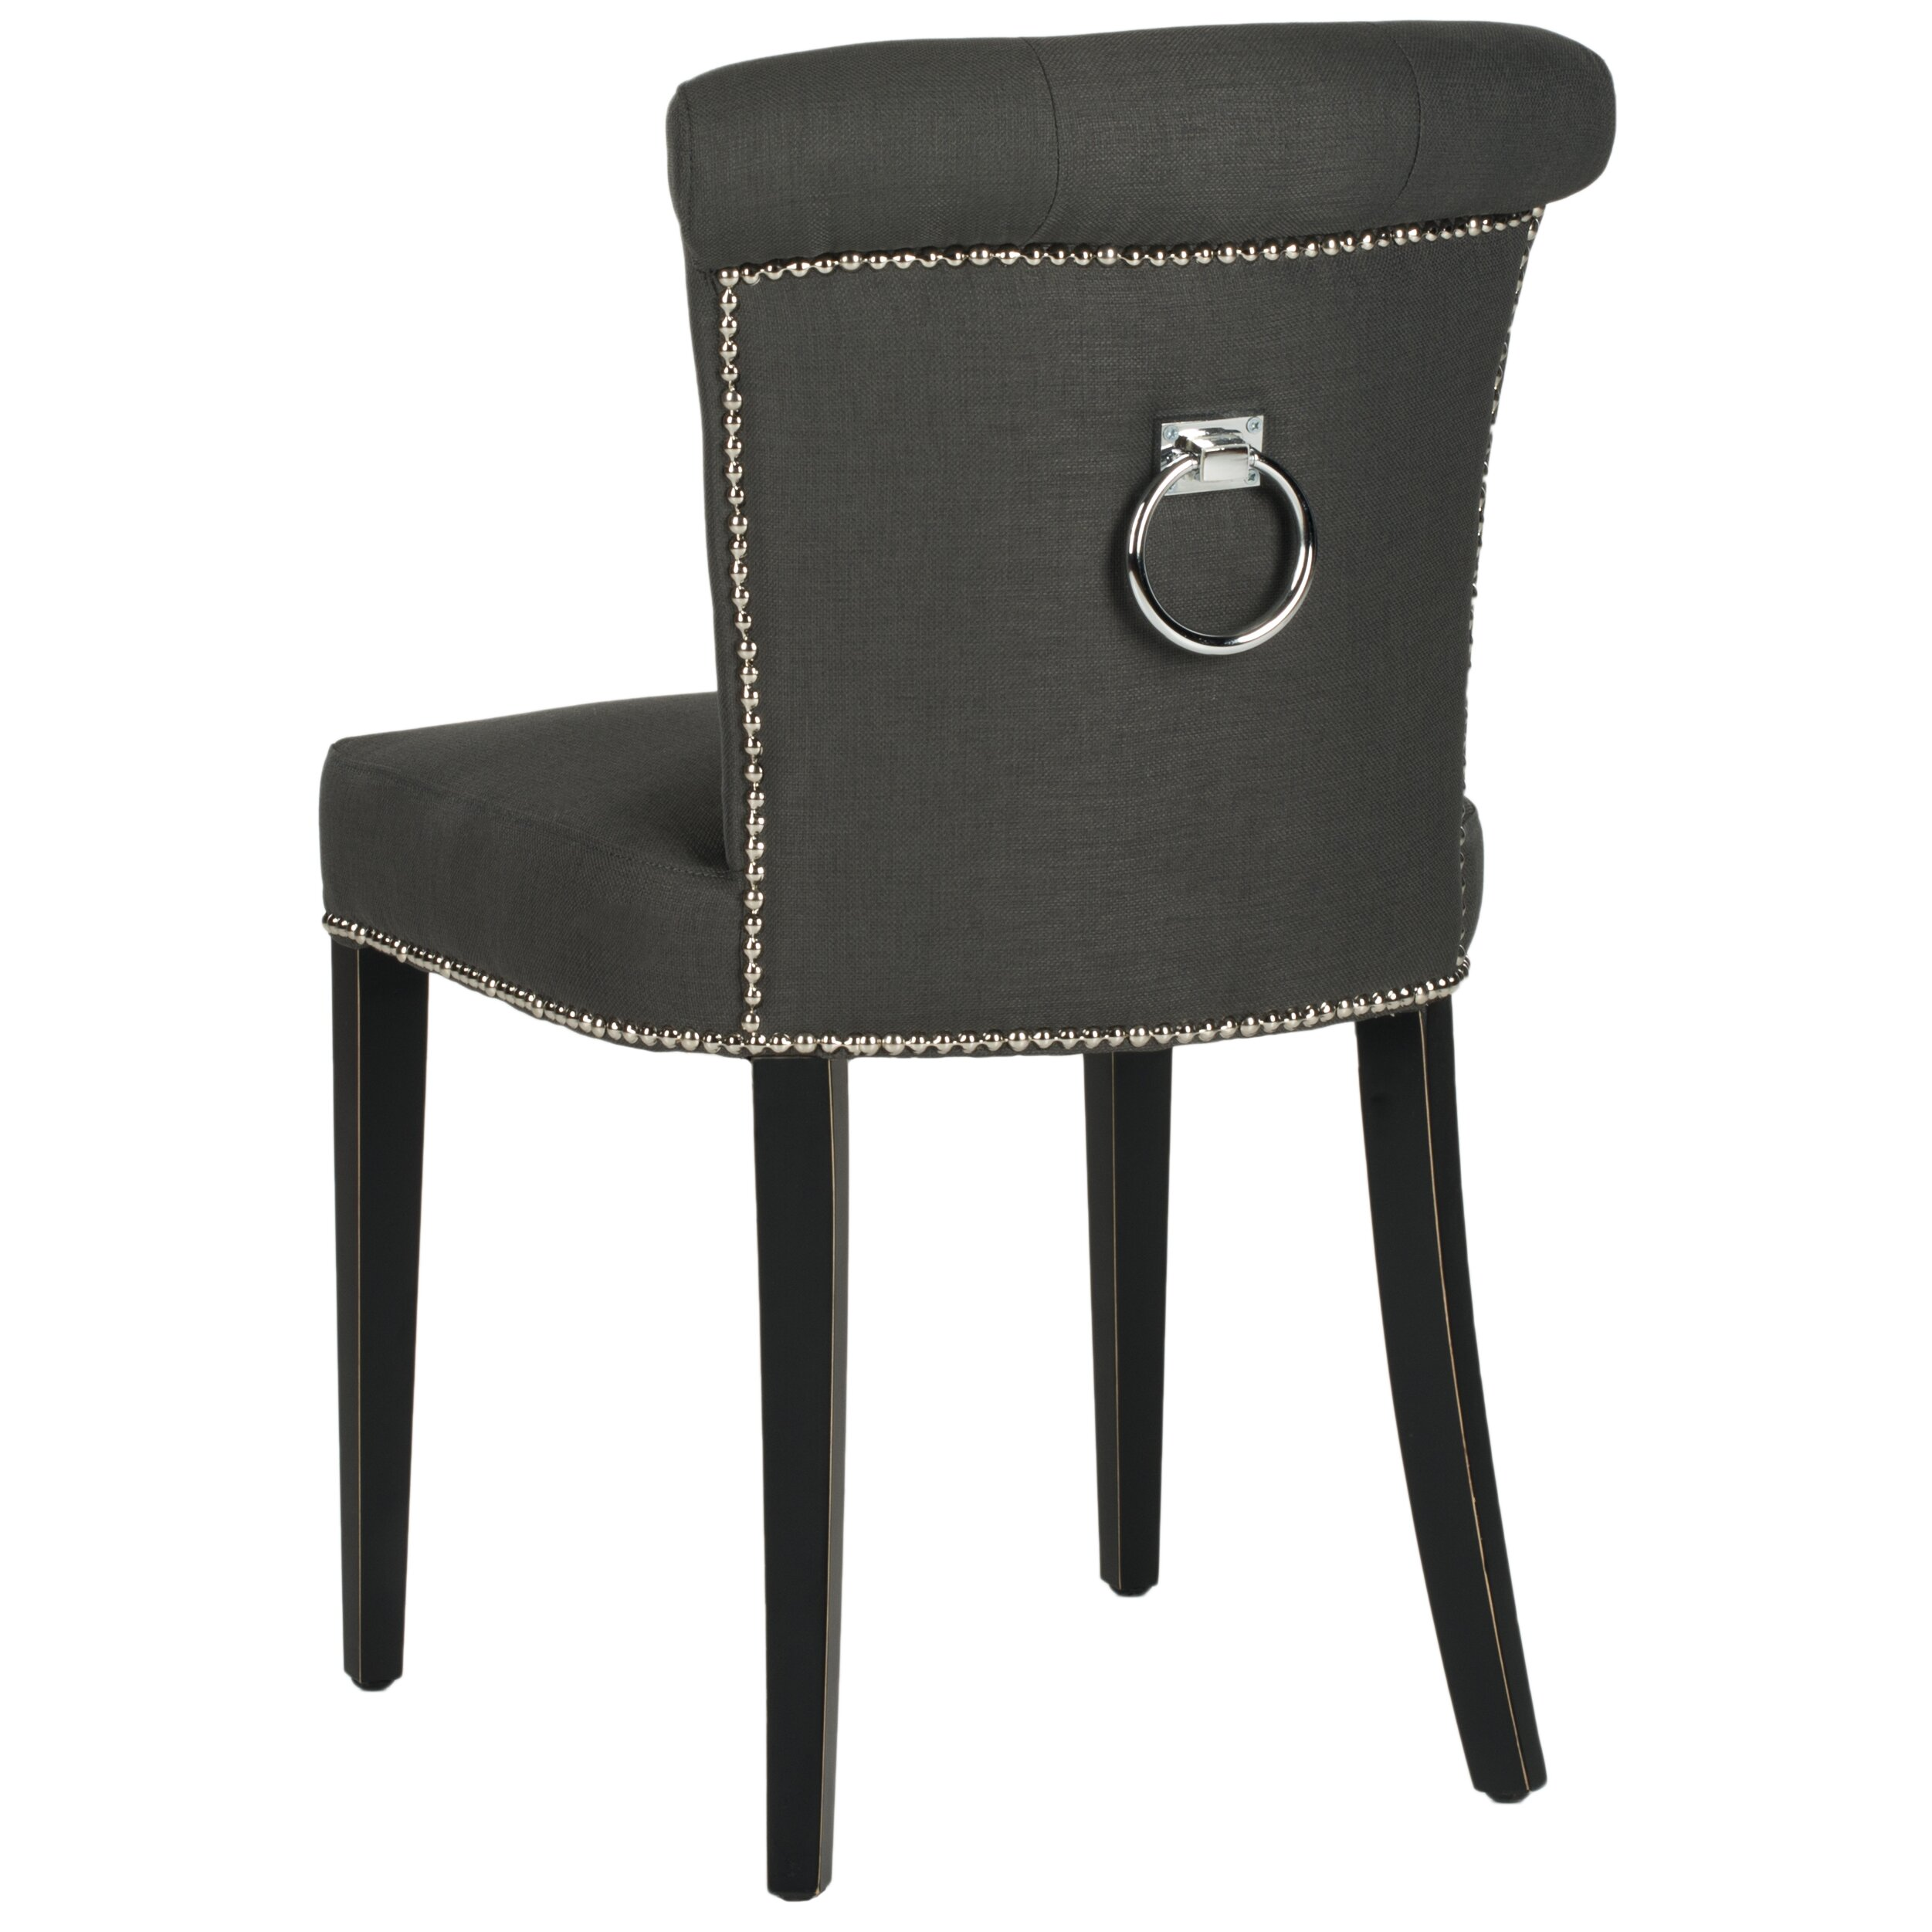 Safavieh arion ring side chair reviews wayfair - Safavieh dining room chairs ideas ...